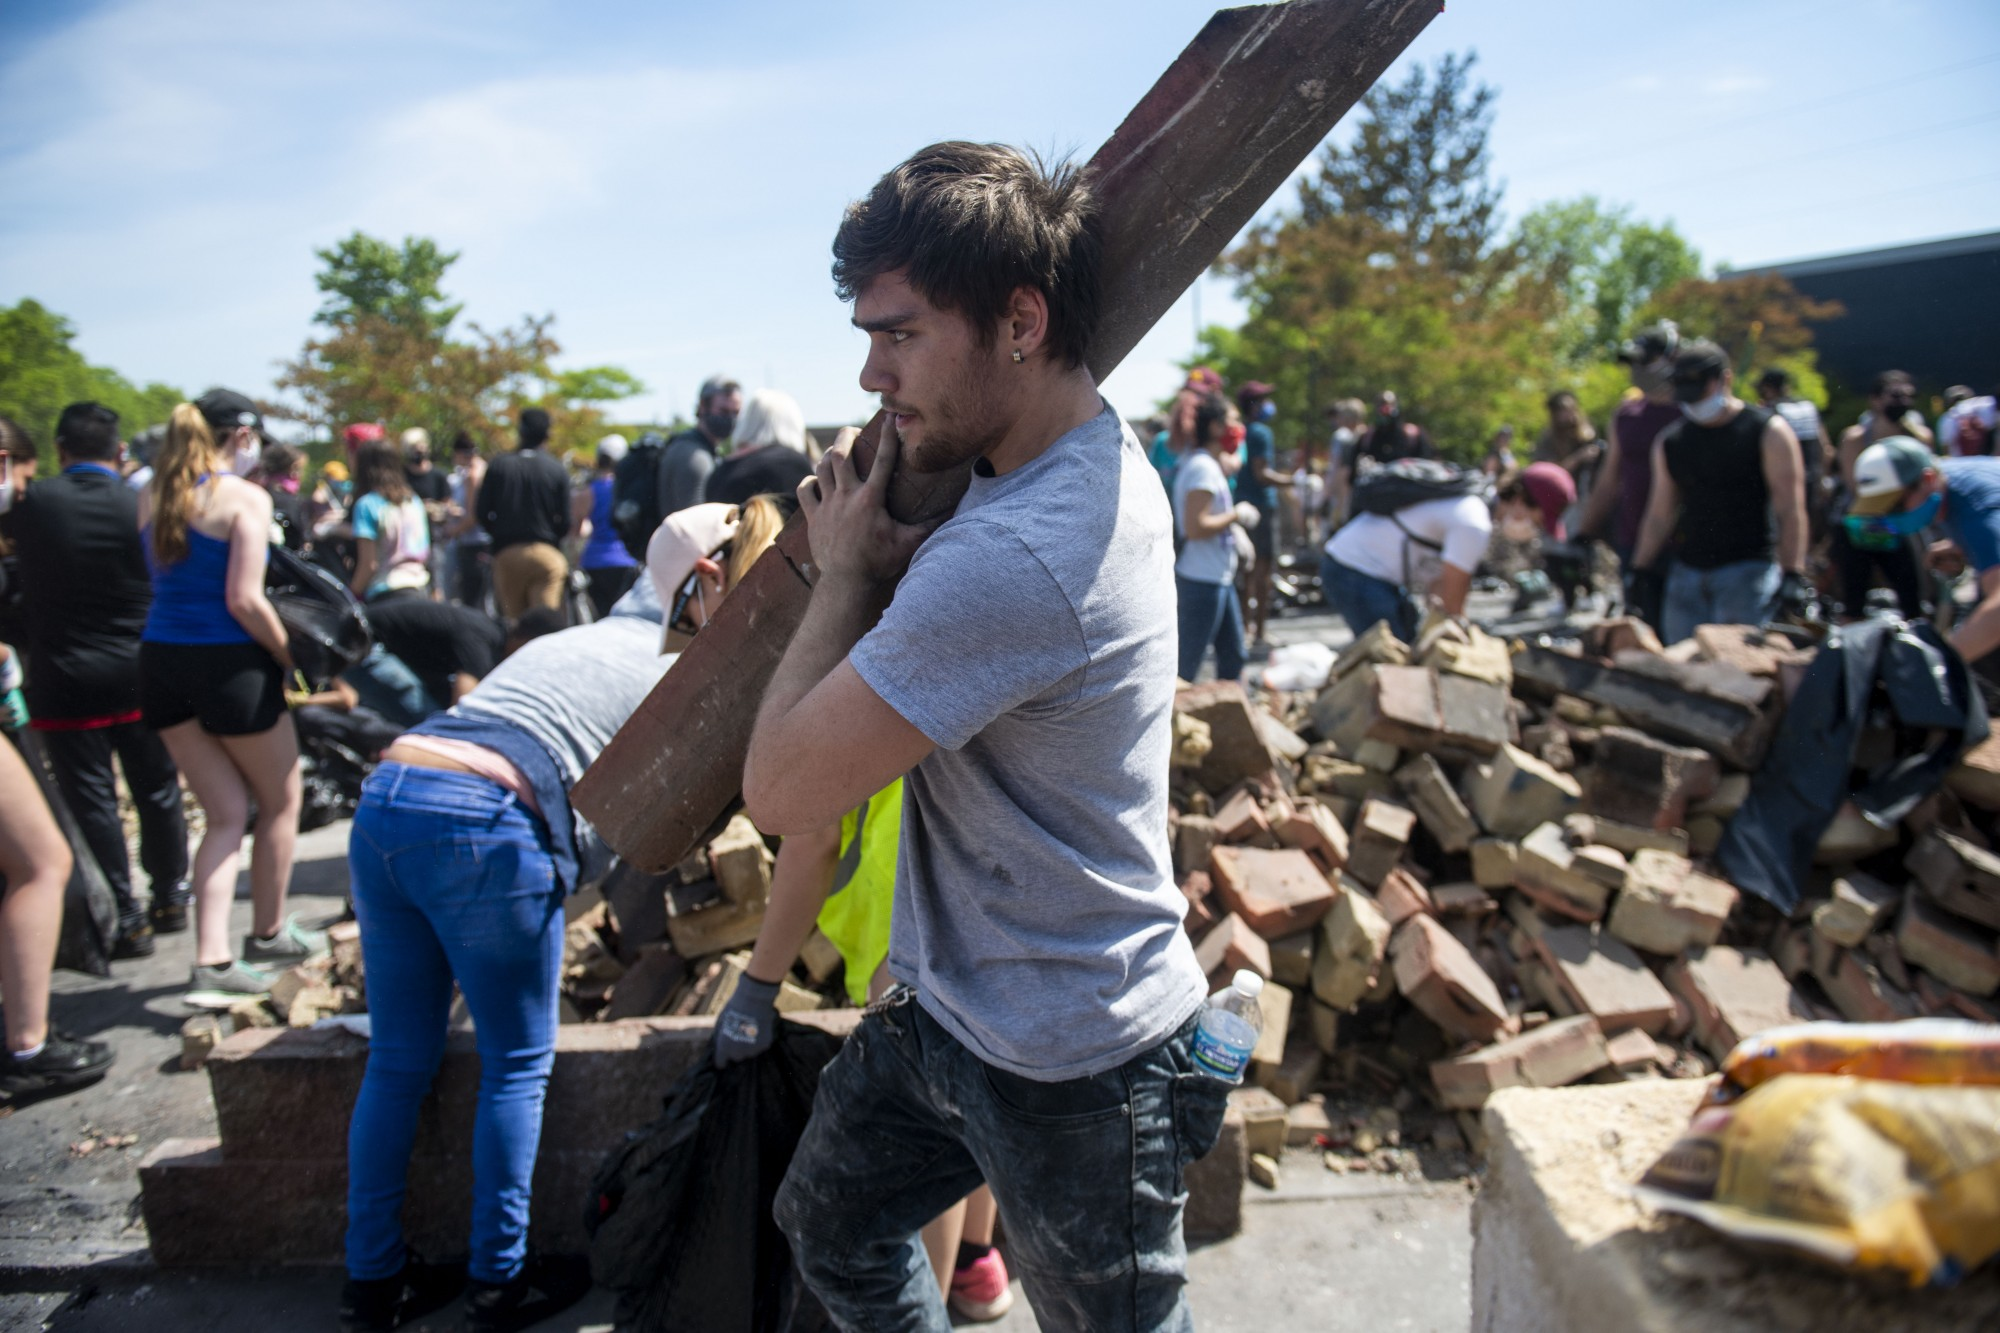 Volunteers help to clean up debris at an Arby's that was destroyed as part of riots on Lake Street in Minneapolis.